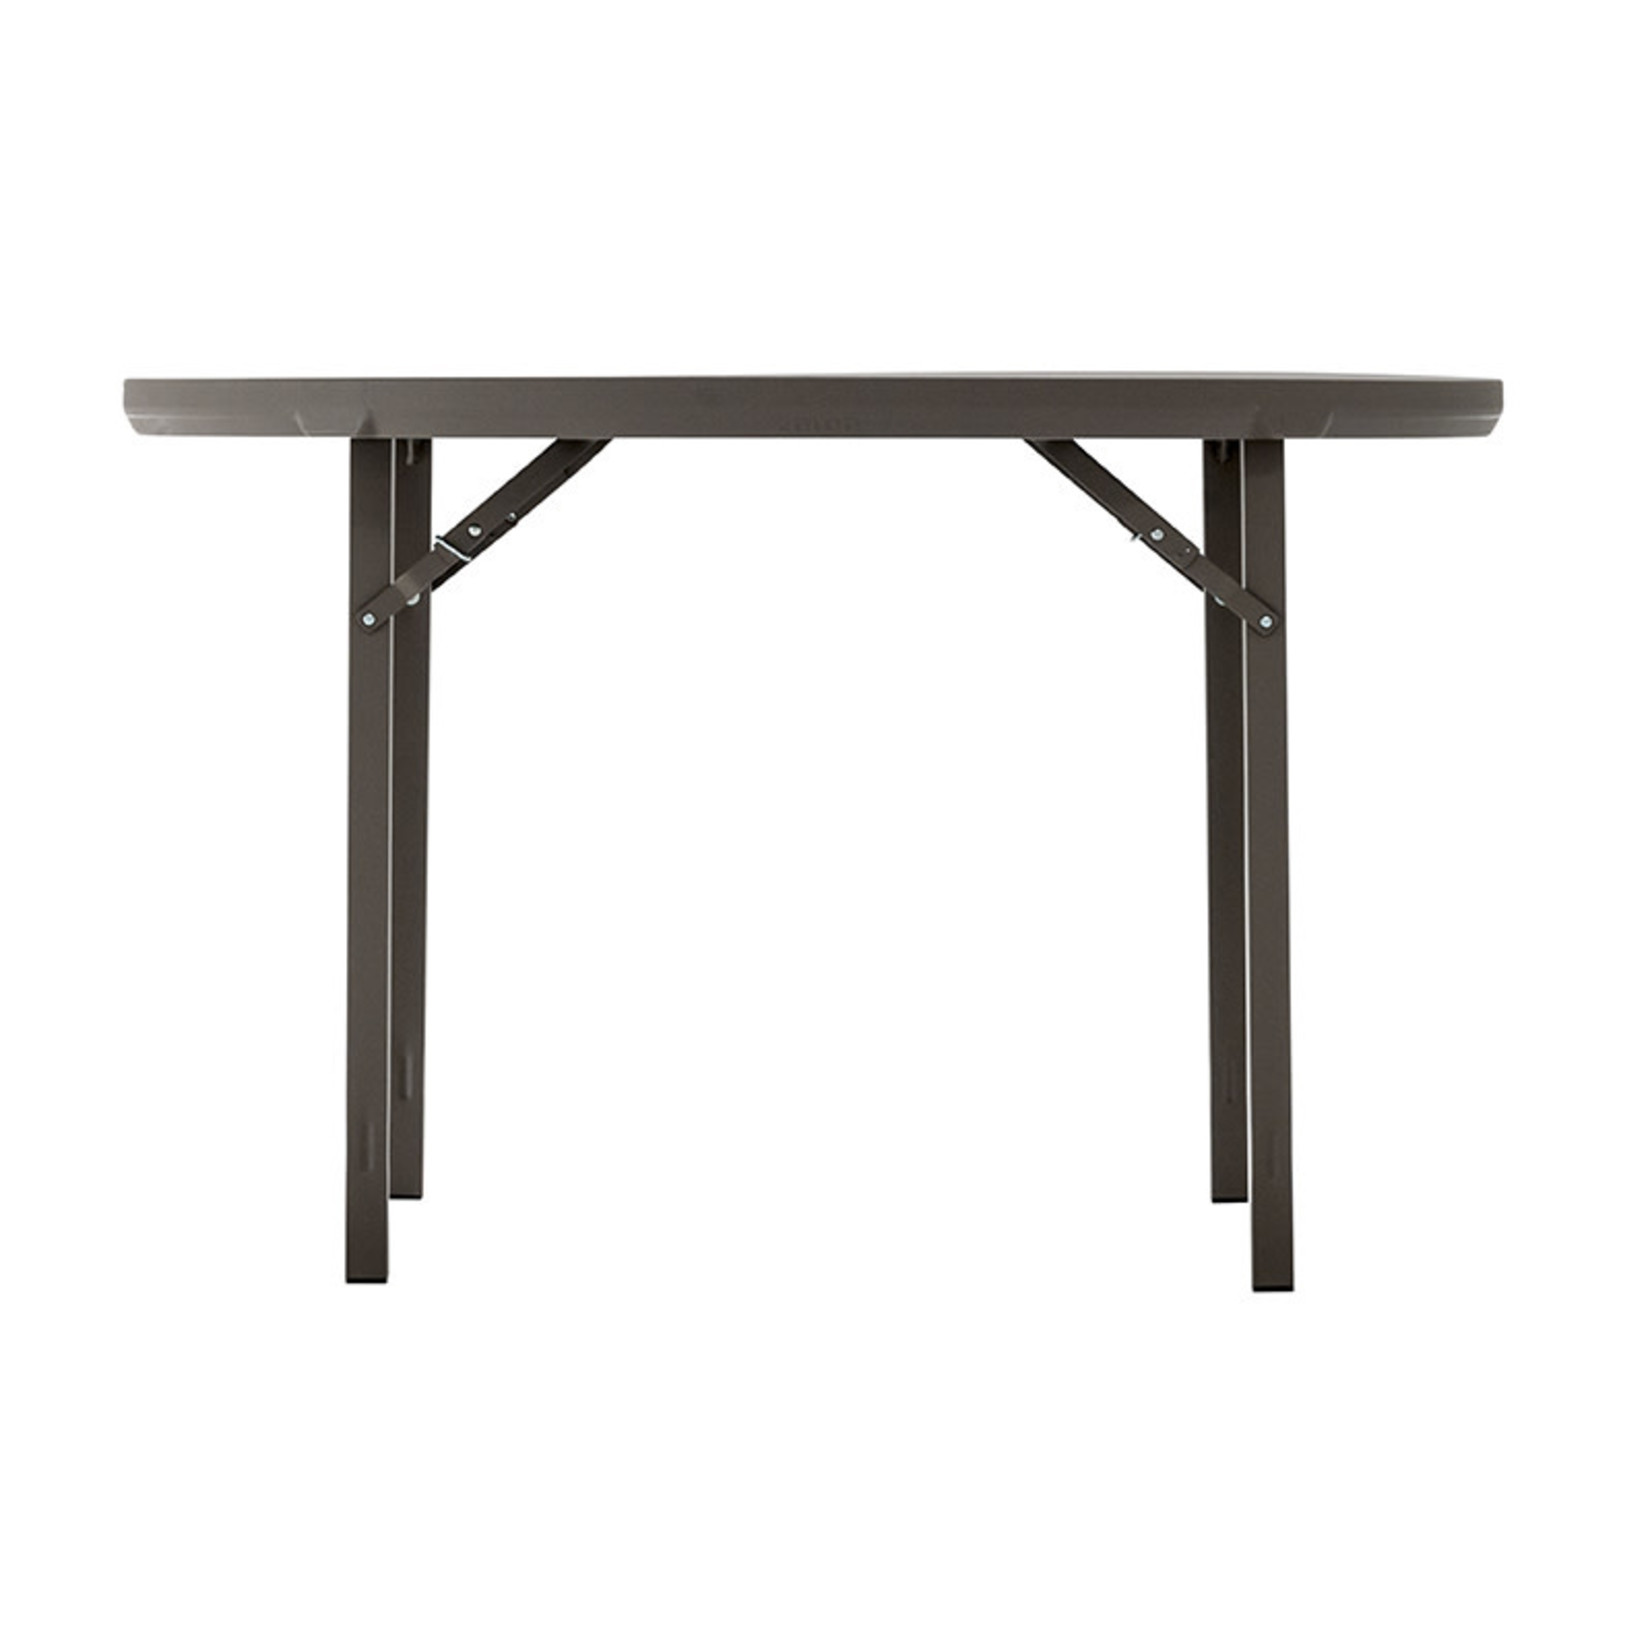 ZOWN PLANET4 TABLE